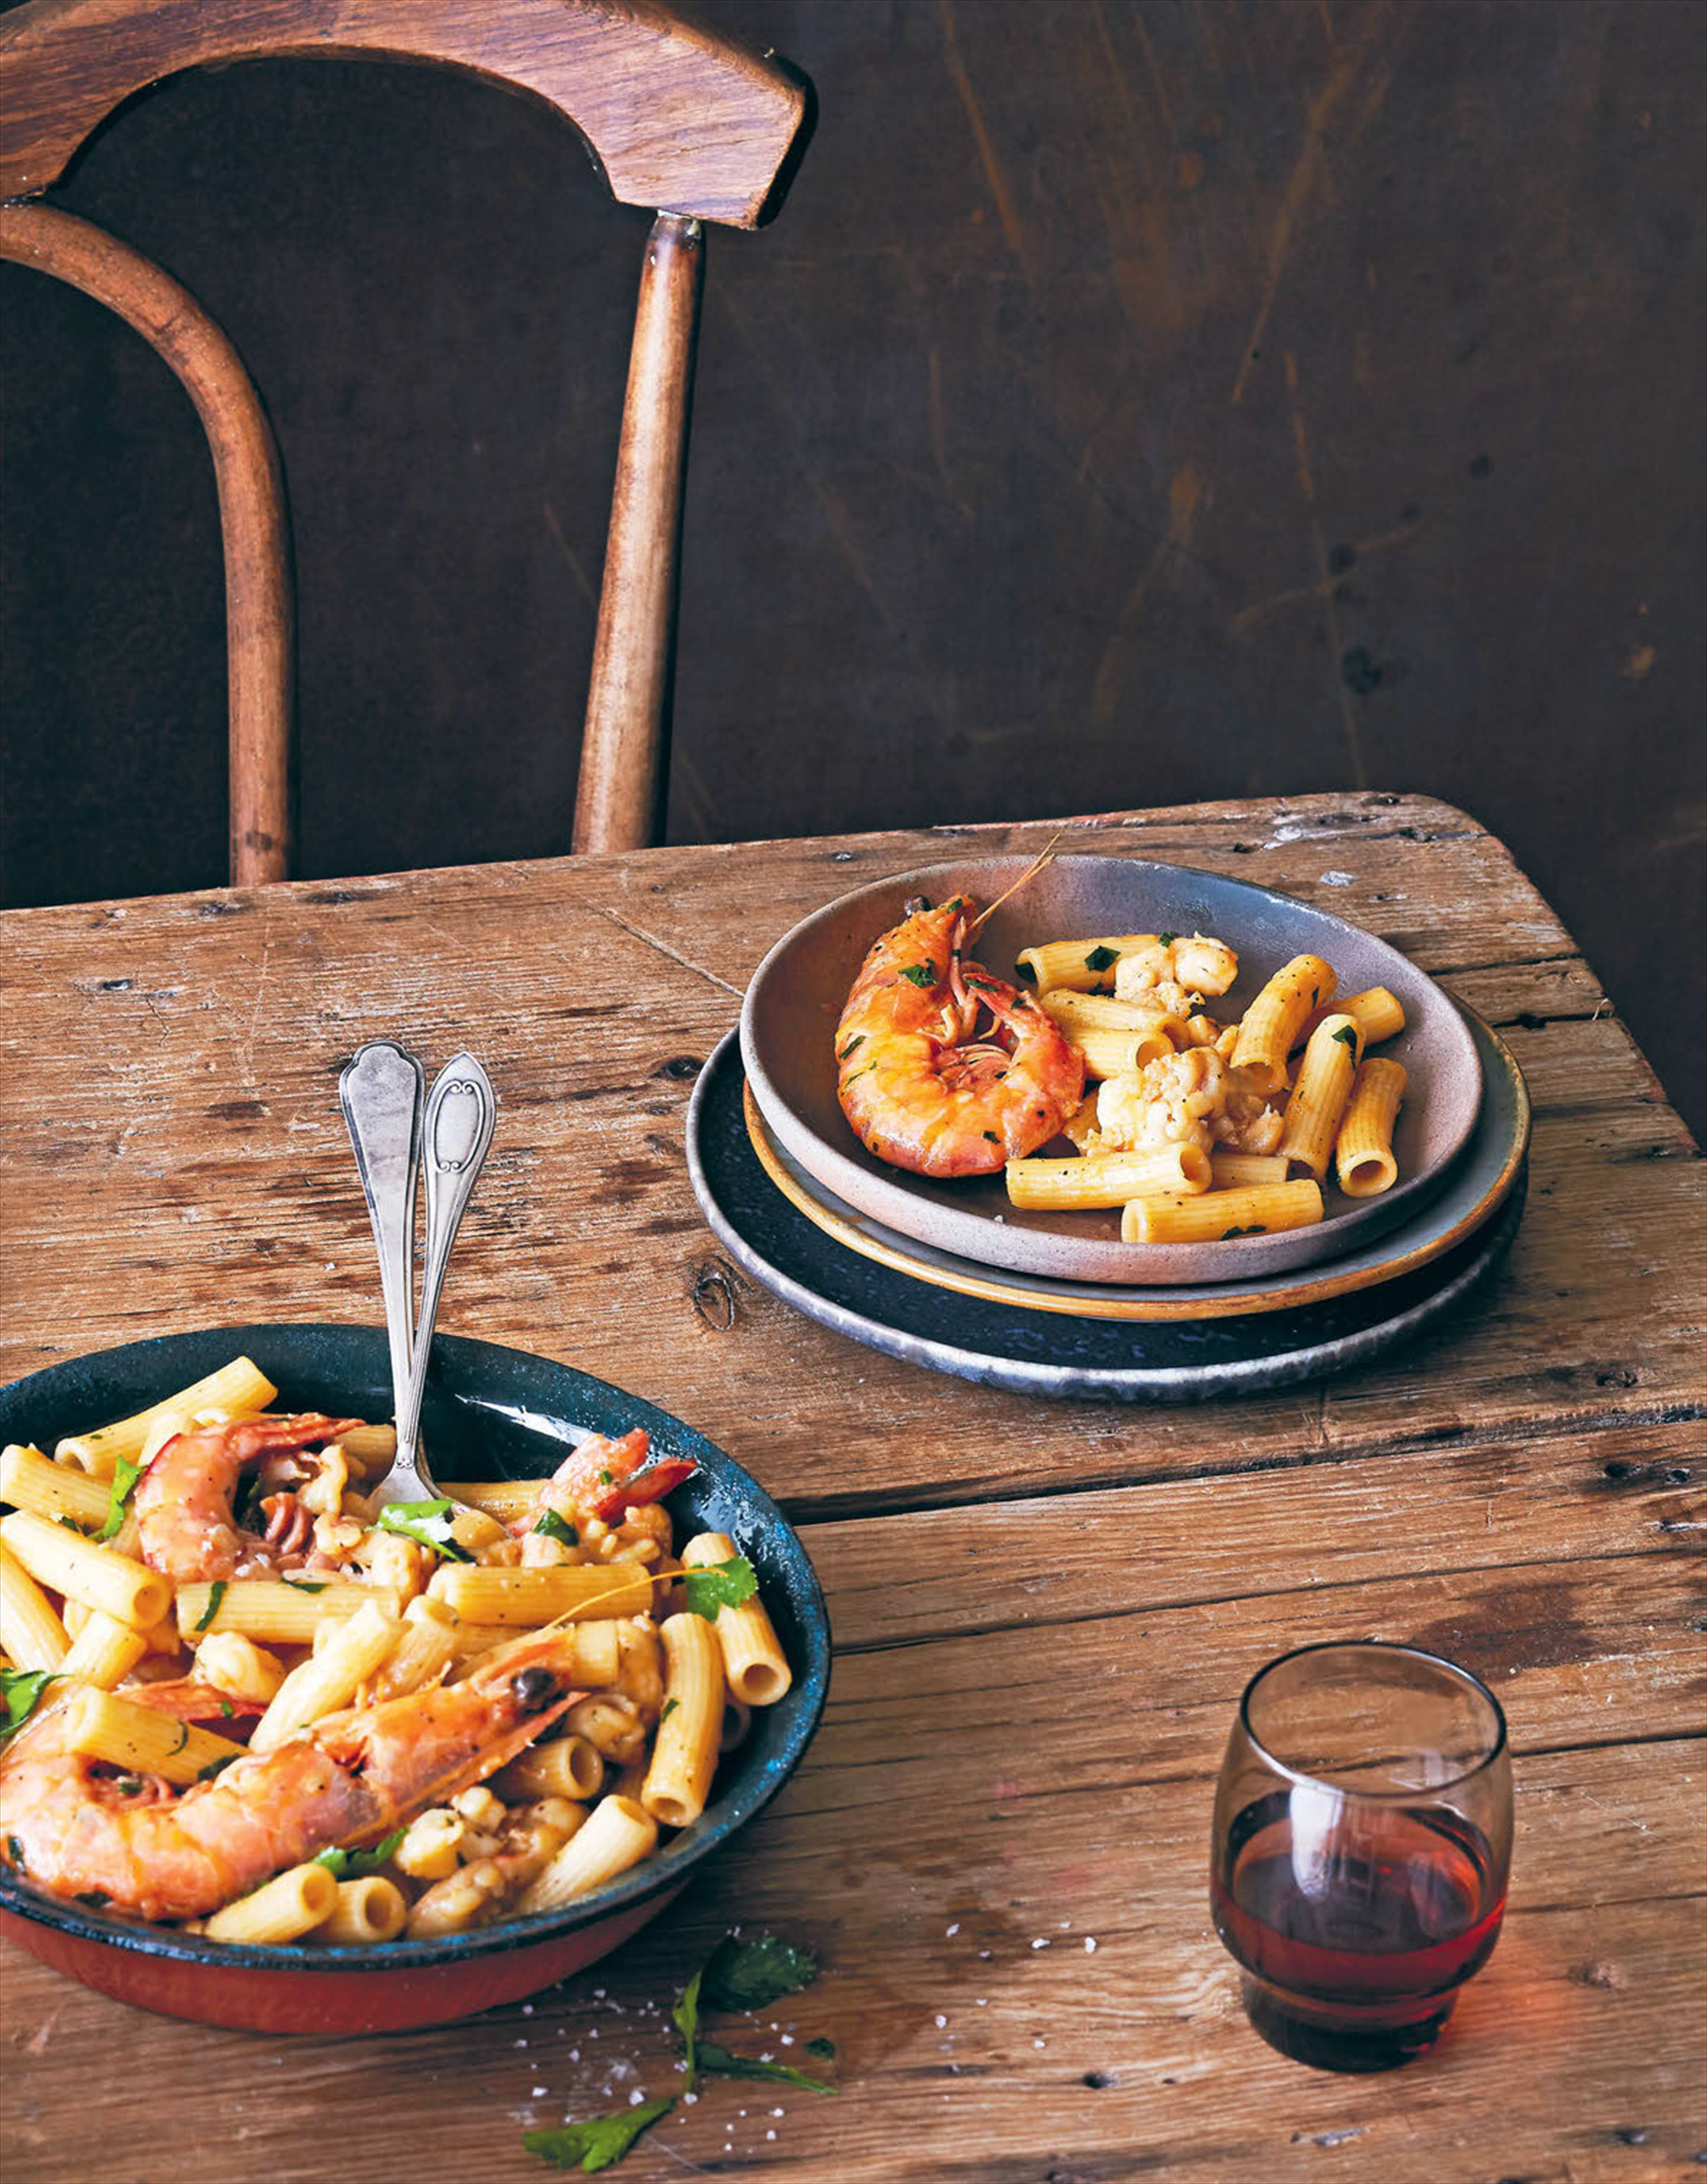 Rigatoni with prawns Gallipoli-style